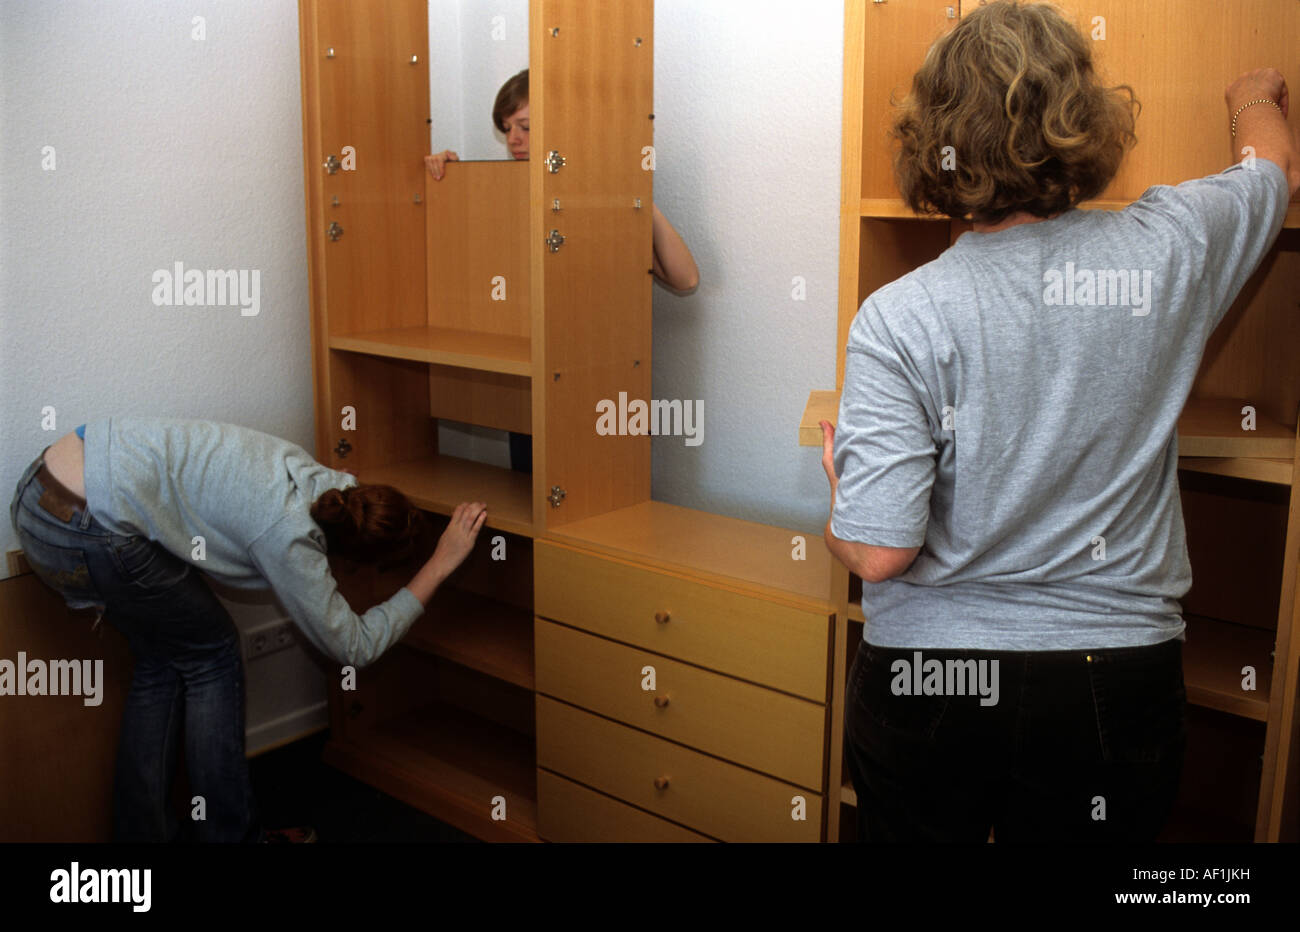 flat pack furniture. Family Assembling Flat Pack Furniture At Their Home In Solingen, North Rhine-Westphalia, Germany D